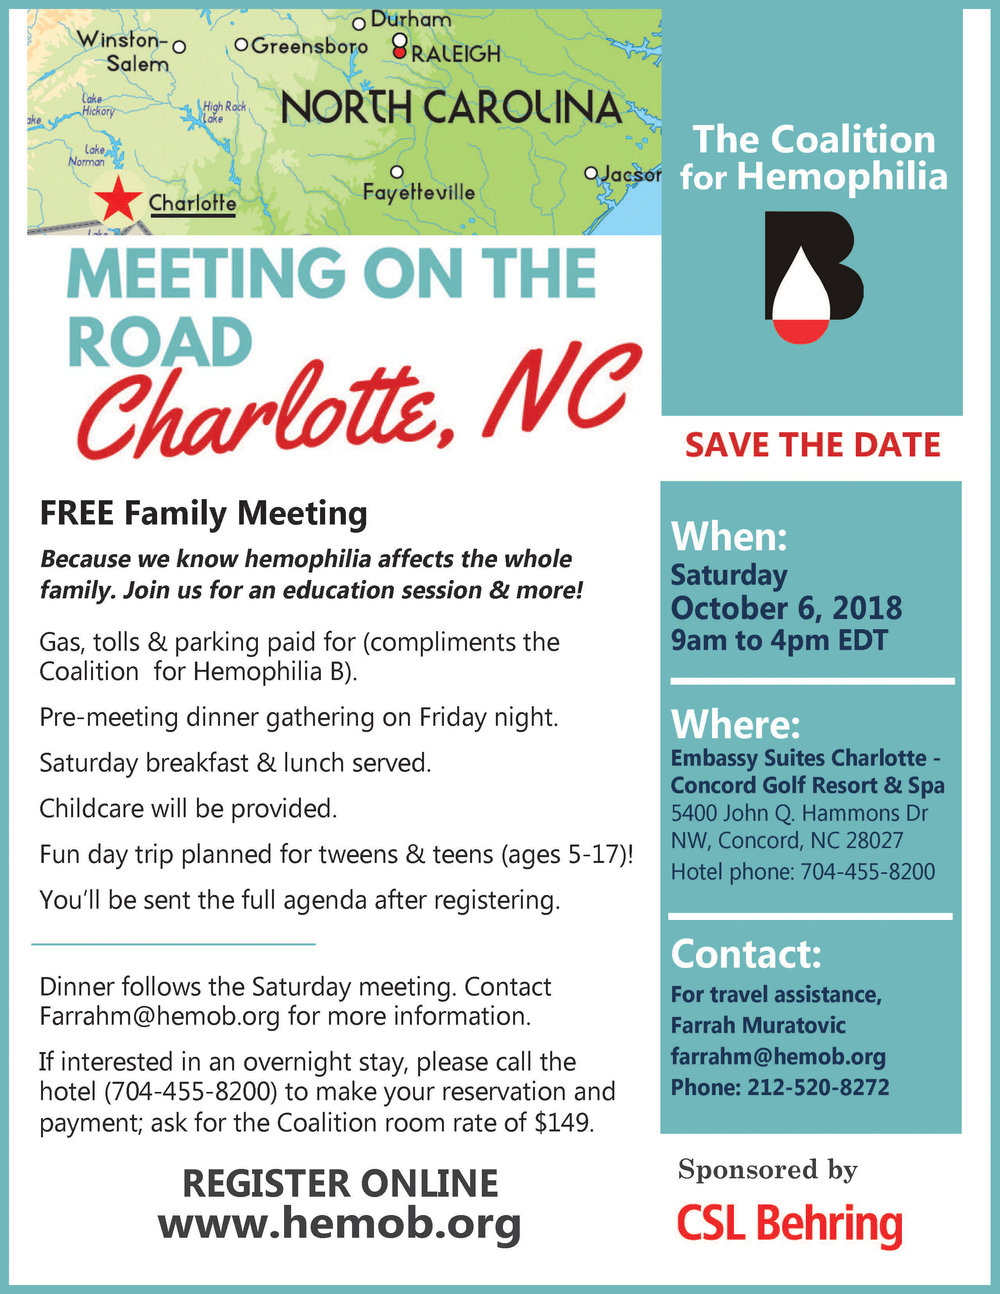 - Download our official Charlotte, NC meeting flyer HERE, and we'll see you in October!